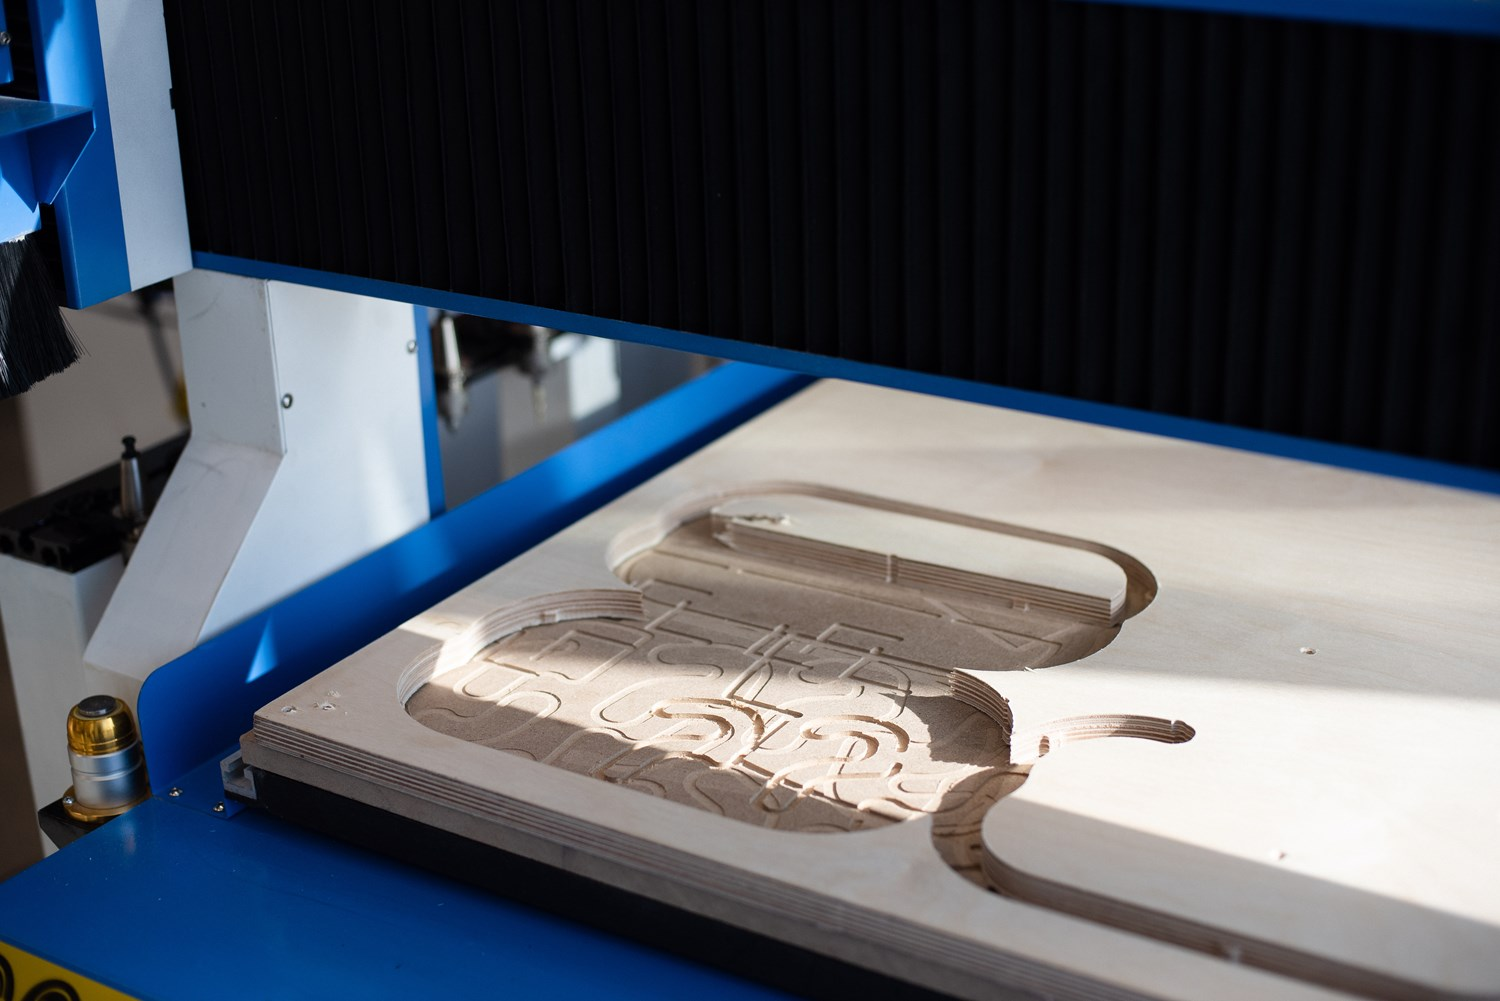 201: CNC Router Programming and Operation @1:30pm